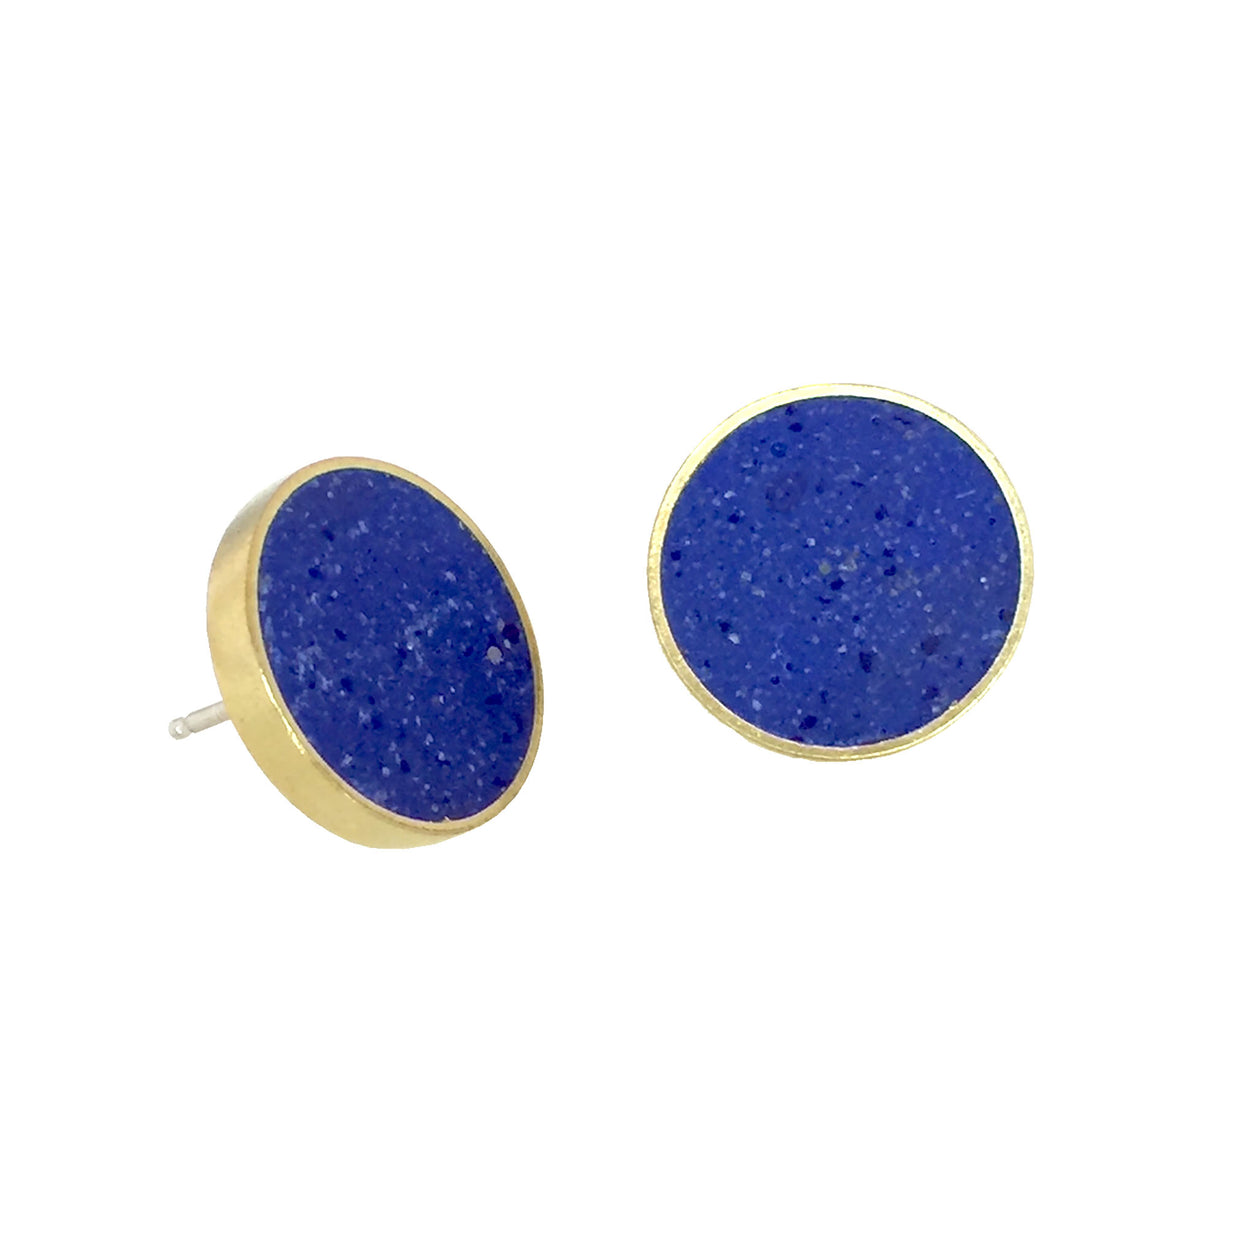 Concrete cluster earrings with blue pigmented concrete in a brass circle shaped setting